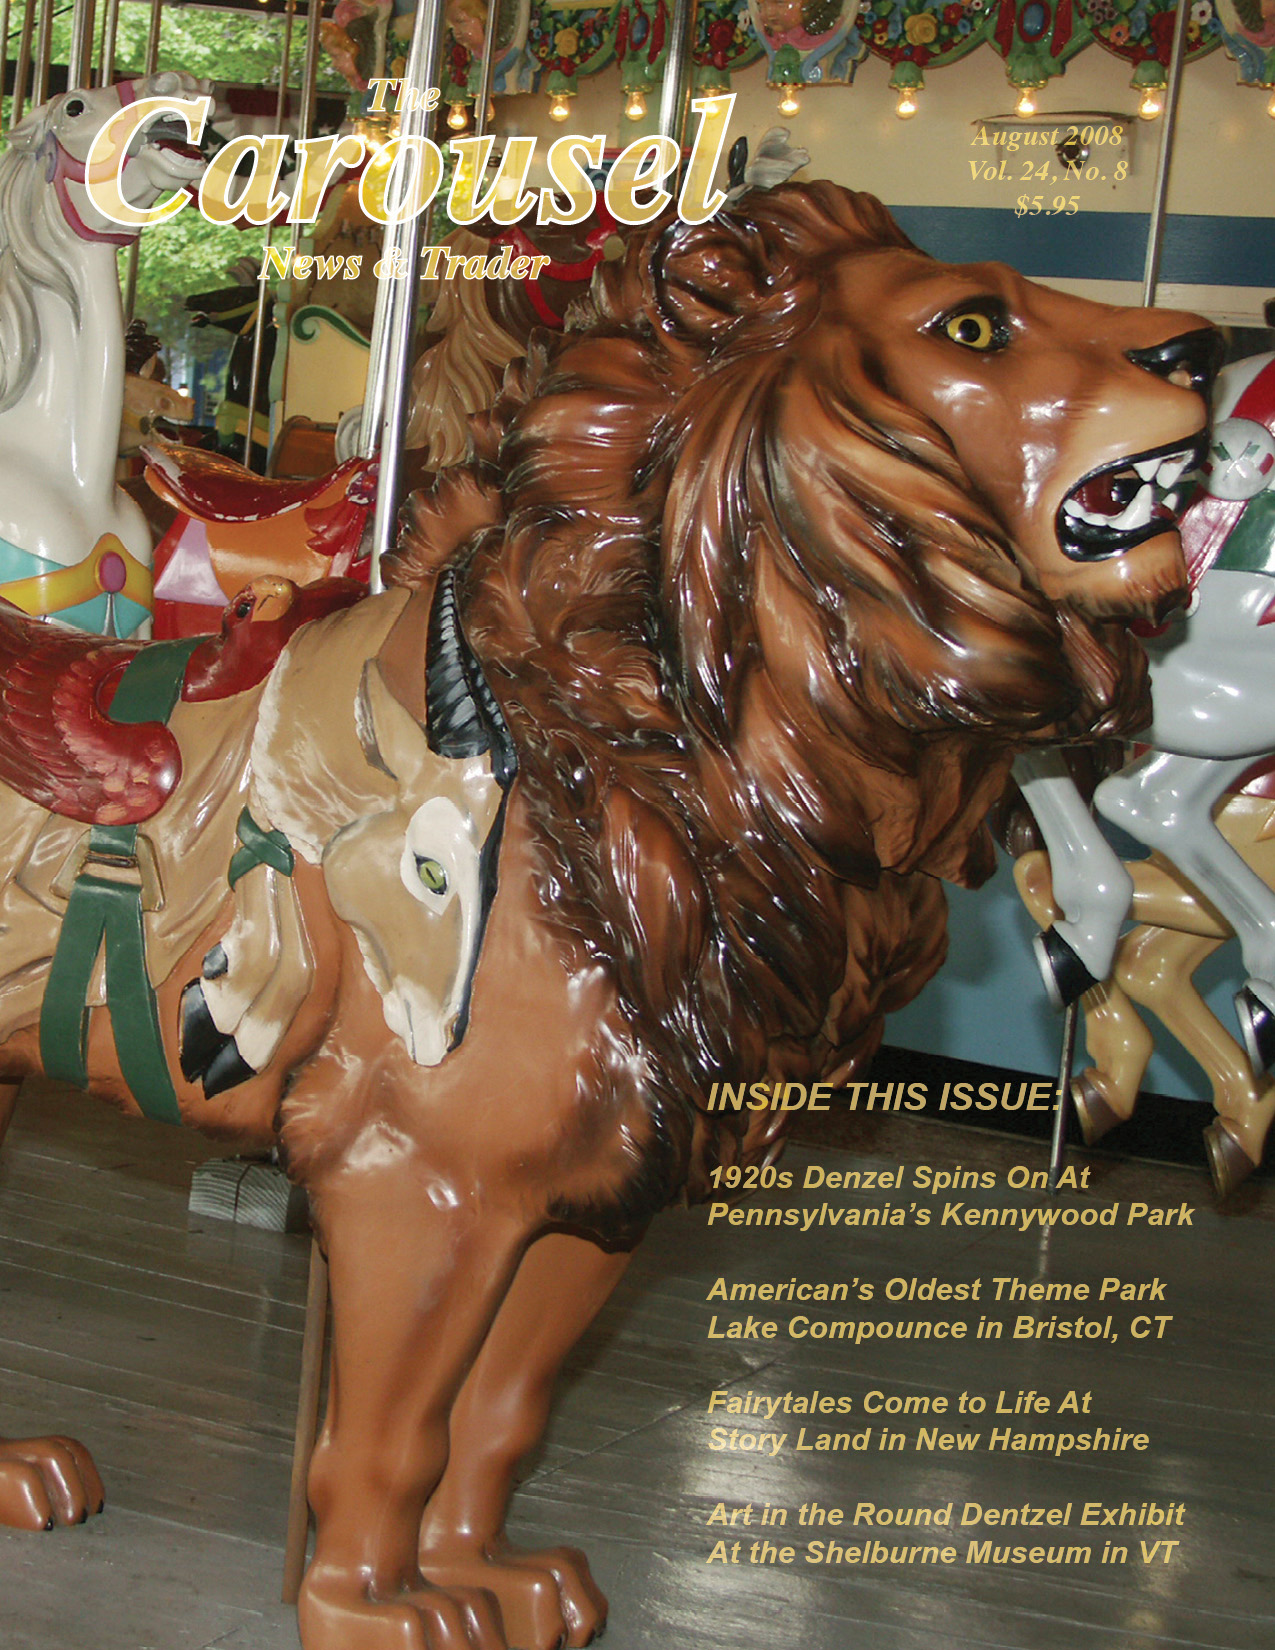 Carousel-news-cover-8-Kennywood-Dentzel-carousel-lion-August-2008